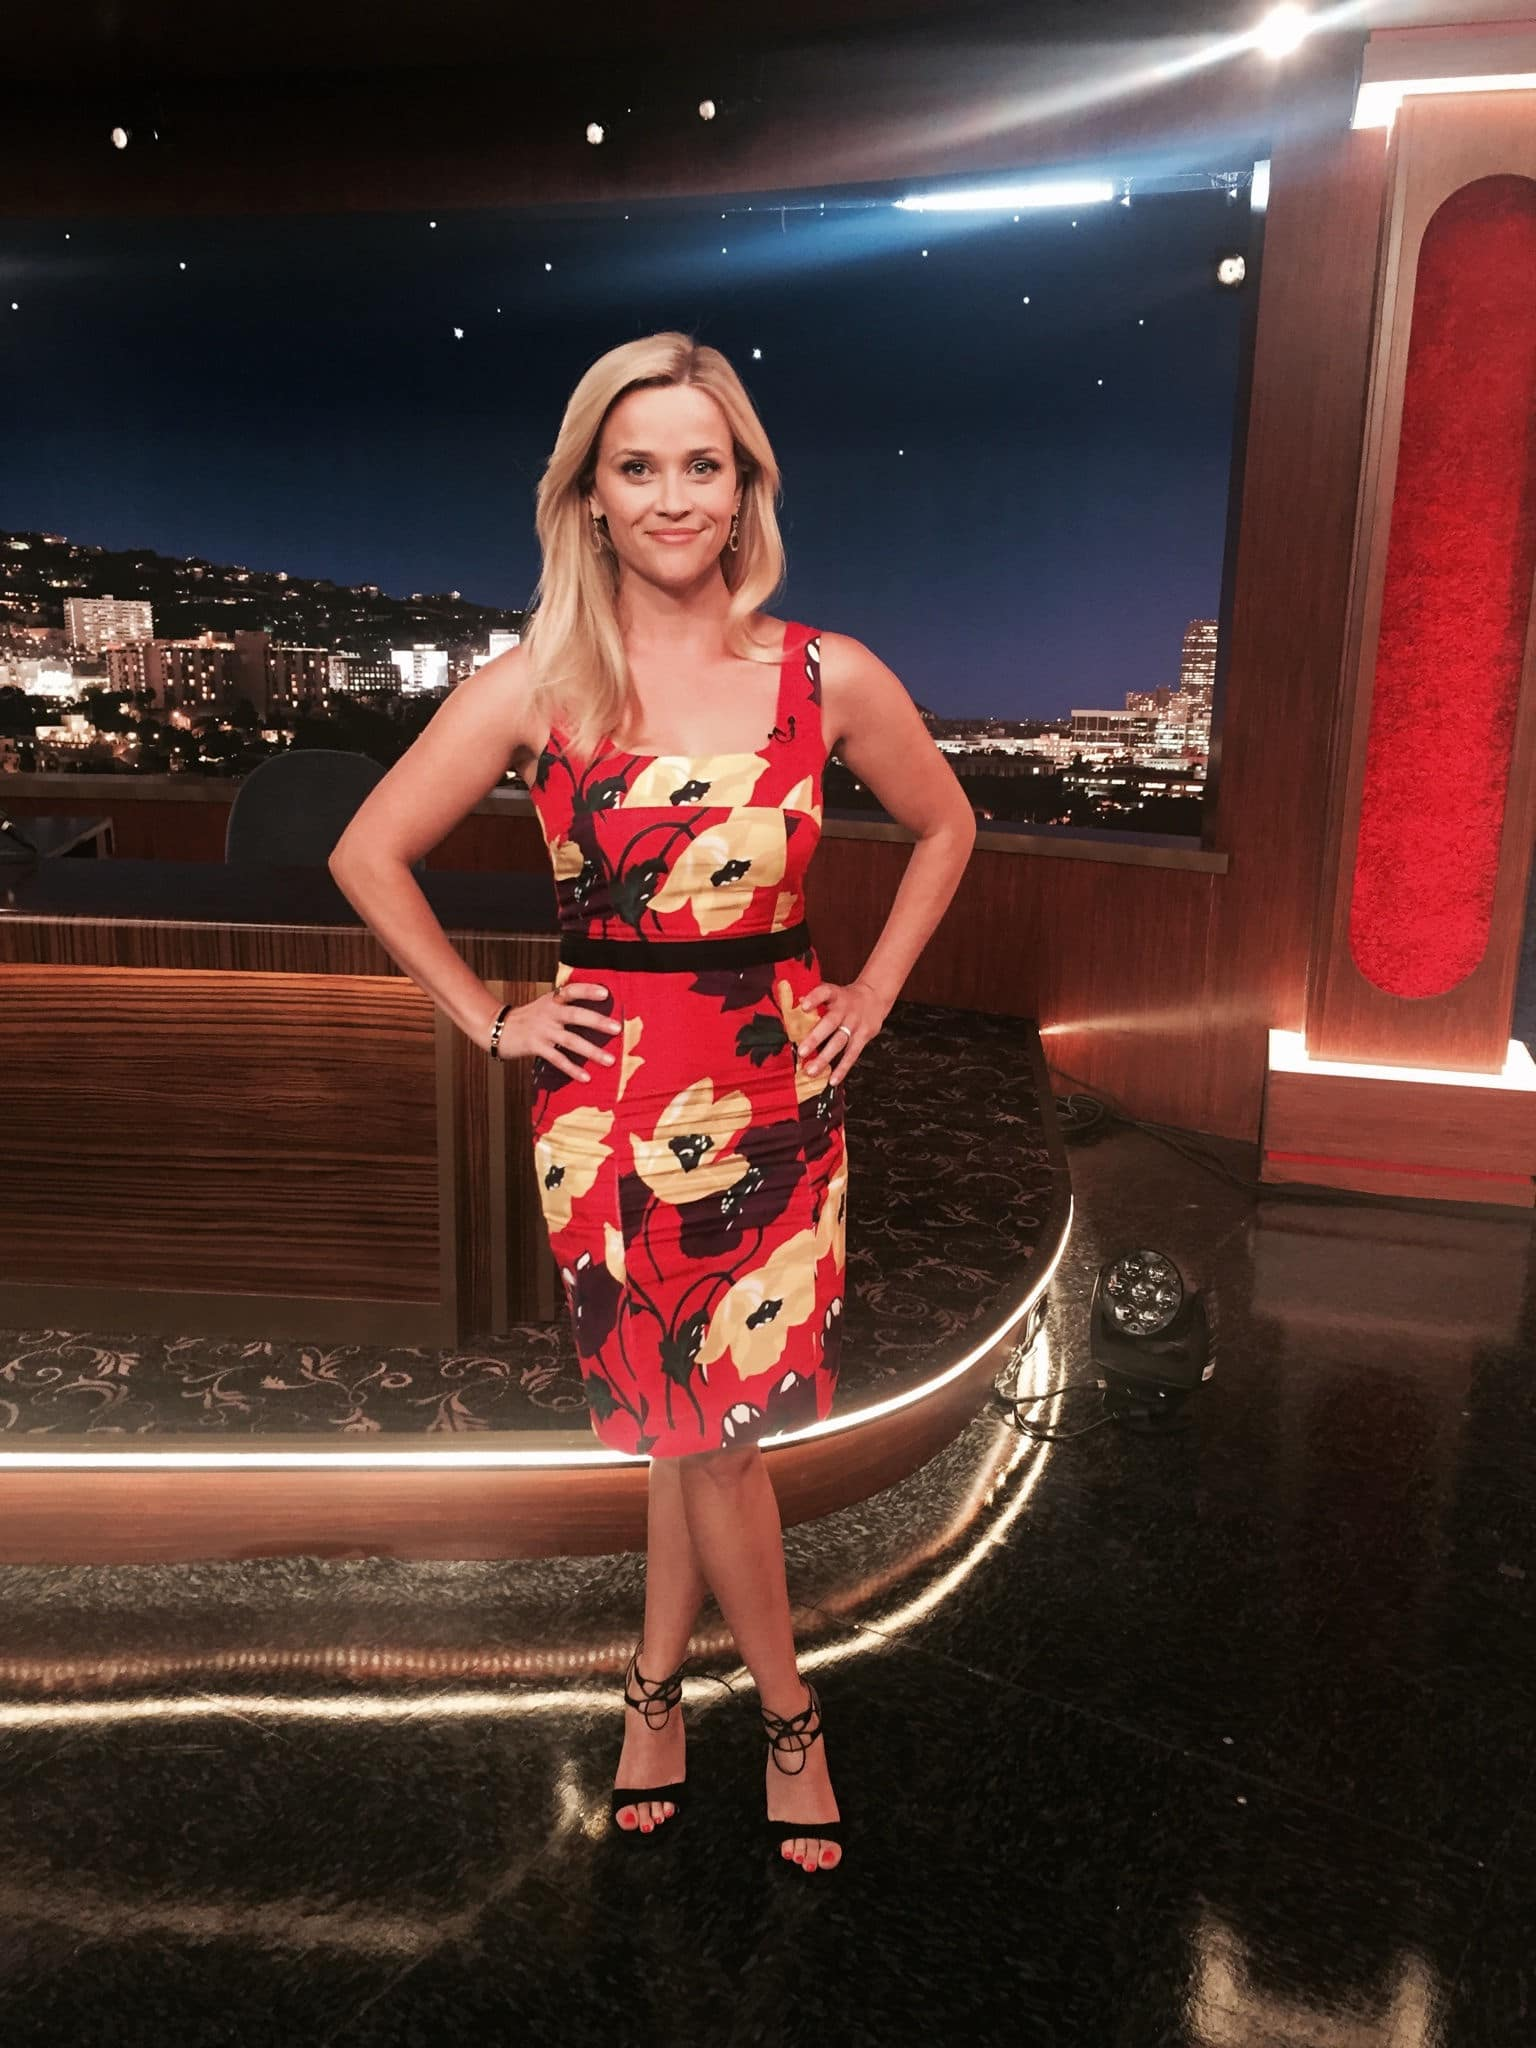 Reese Witherspoon leaked Pics 2020 - Celebrities Nude pics